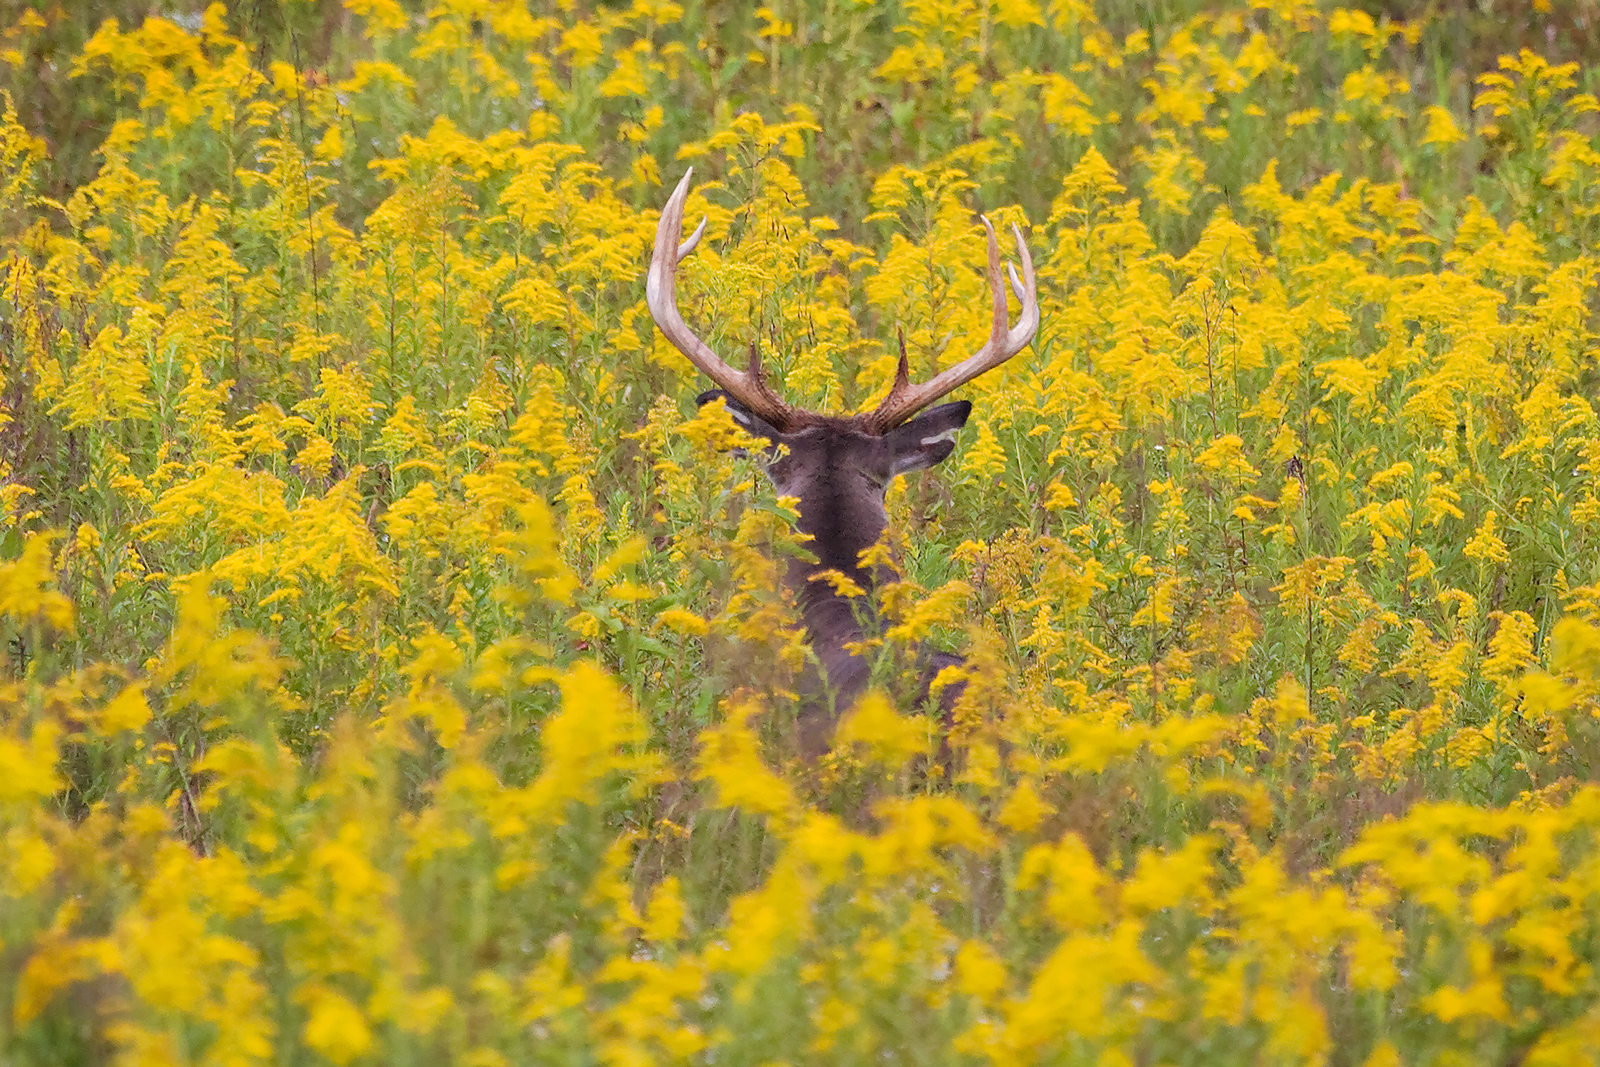 White Tailed Buck in Yellow Flowers